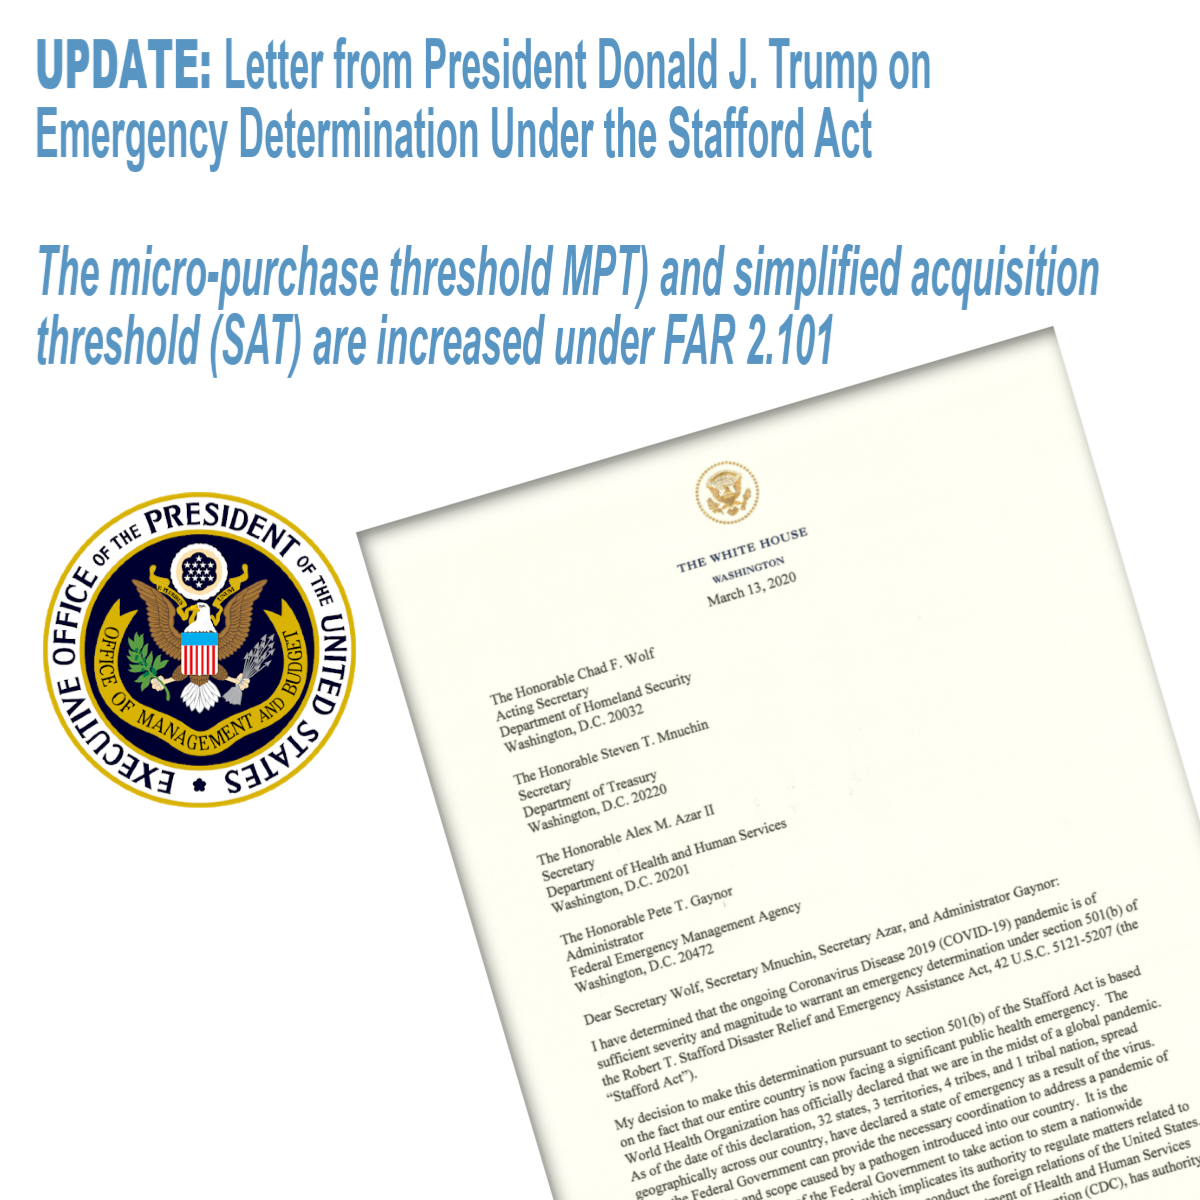 Letter from President Donald J. Trump on Emergency Determination Under the Stafford Act